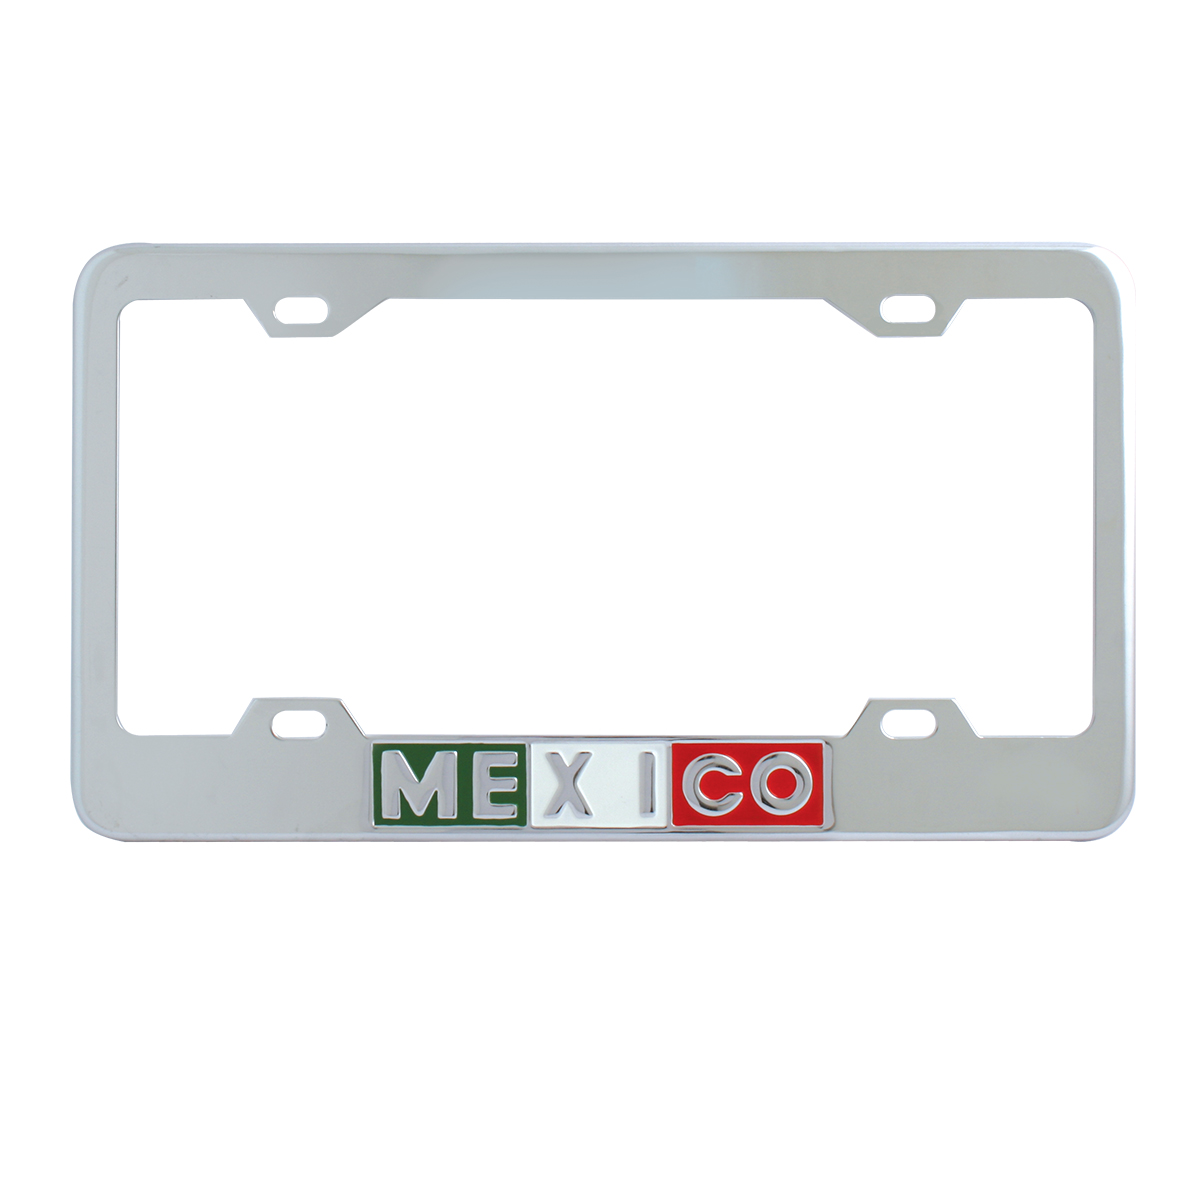 60210 Chrome Plated Steel Mexico License Plate Frame - 4 Holes